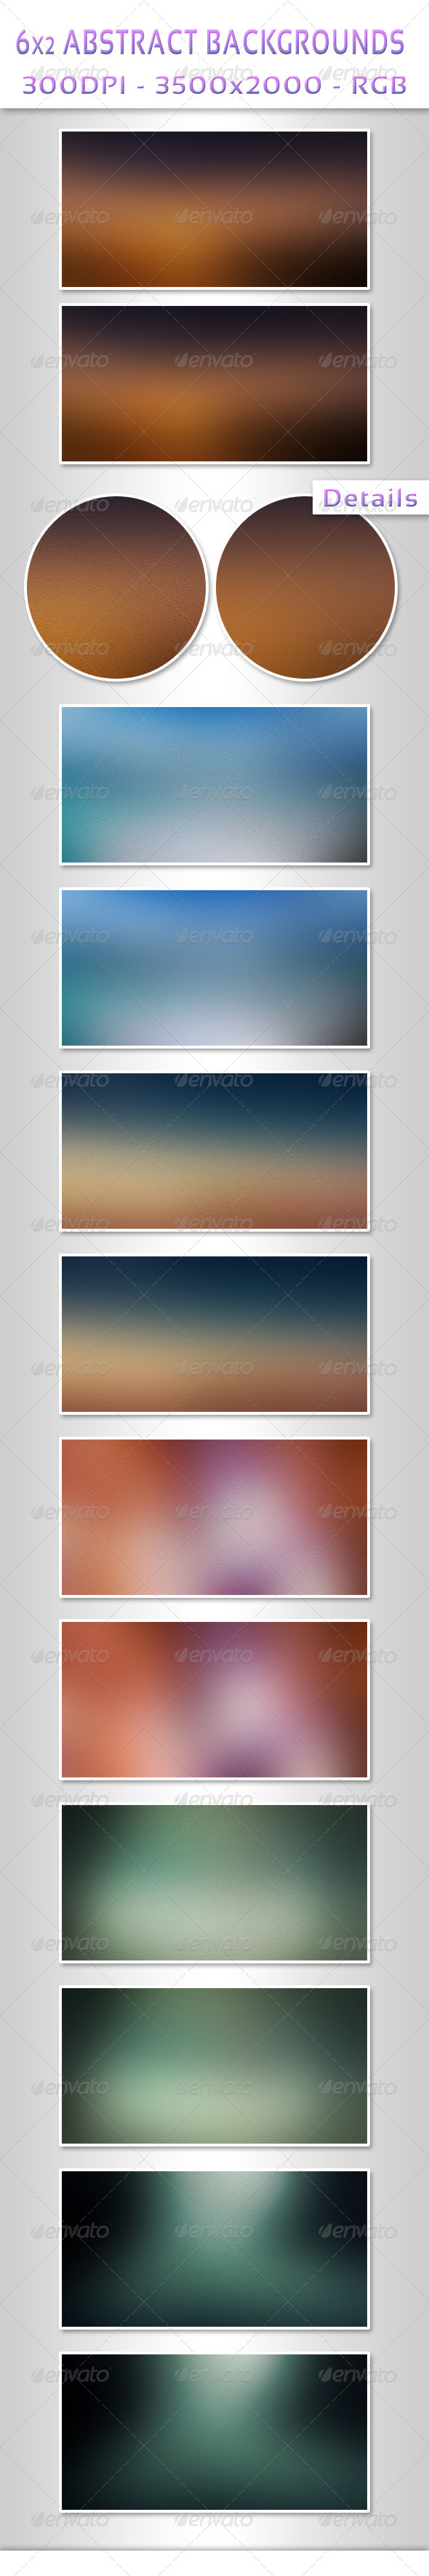 GraphicRiver 6x2 Abstract Backgrounds 2 6587157